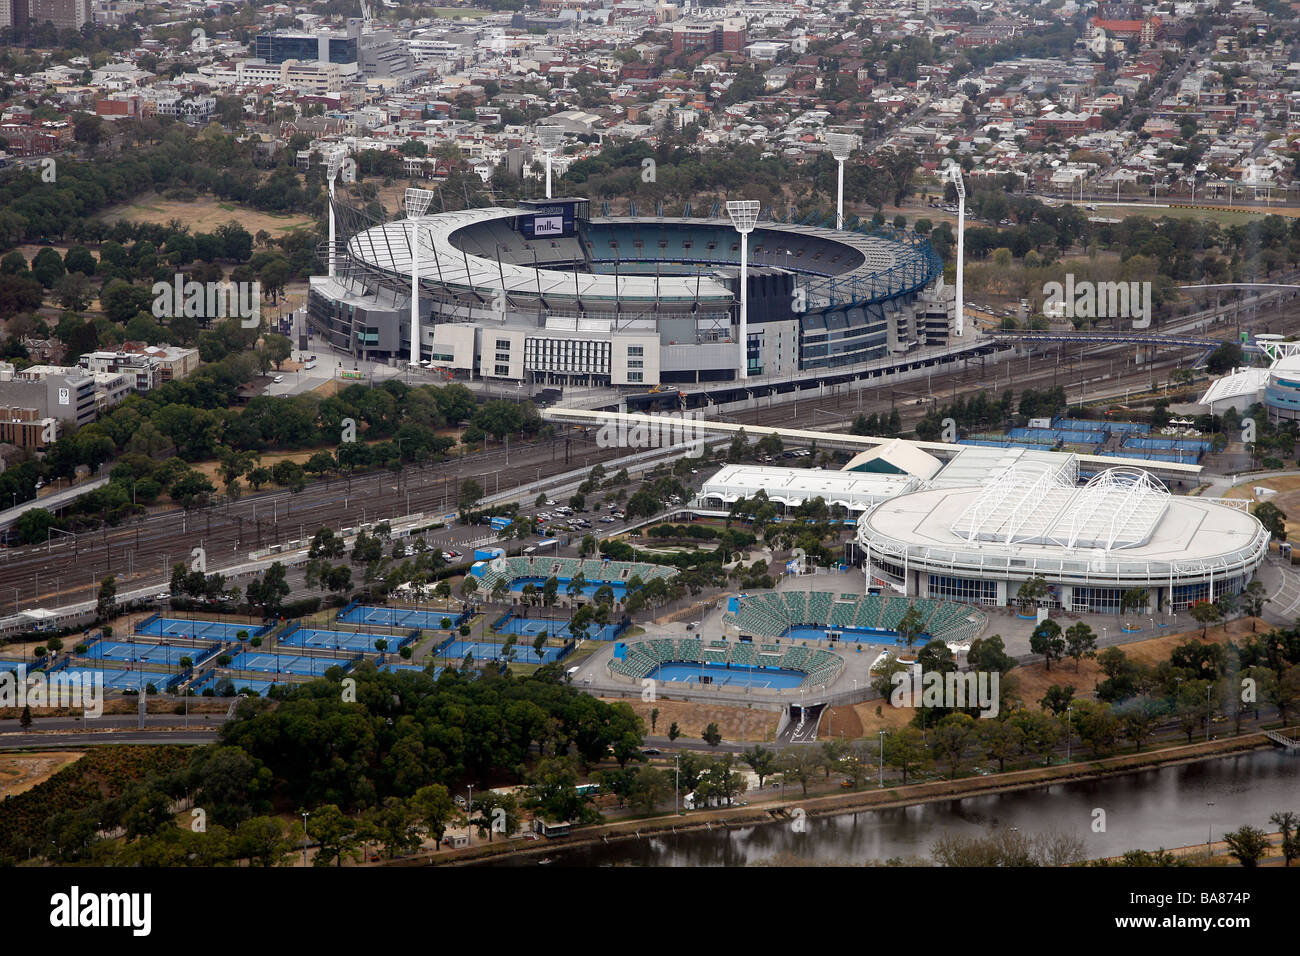 Aerial view of Melbourne Park and the MCG in Melbourne, Australia. - Stock Image